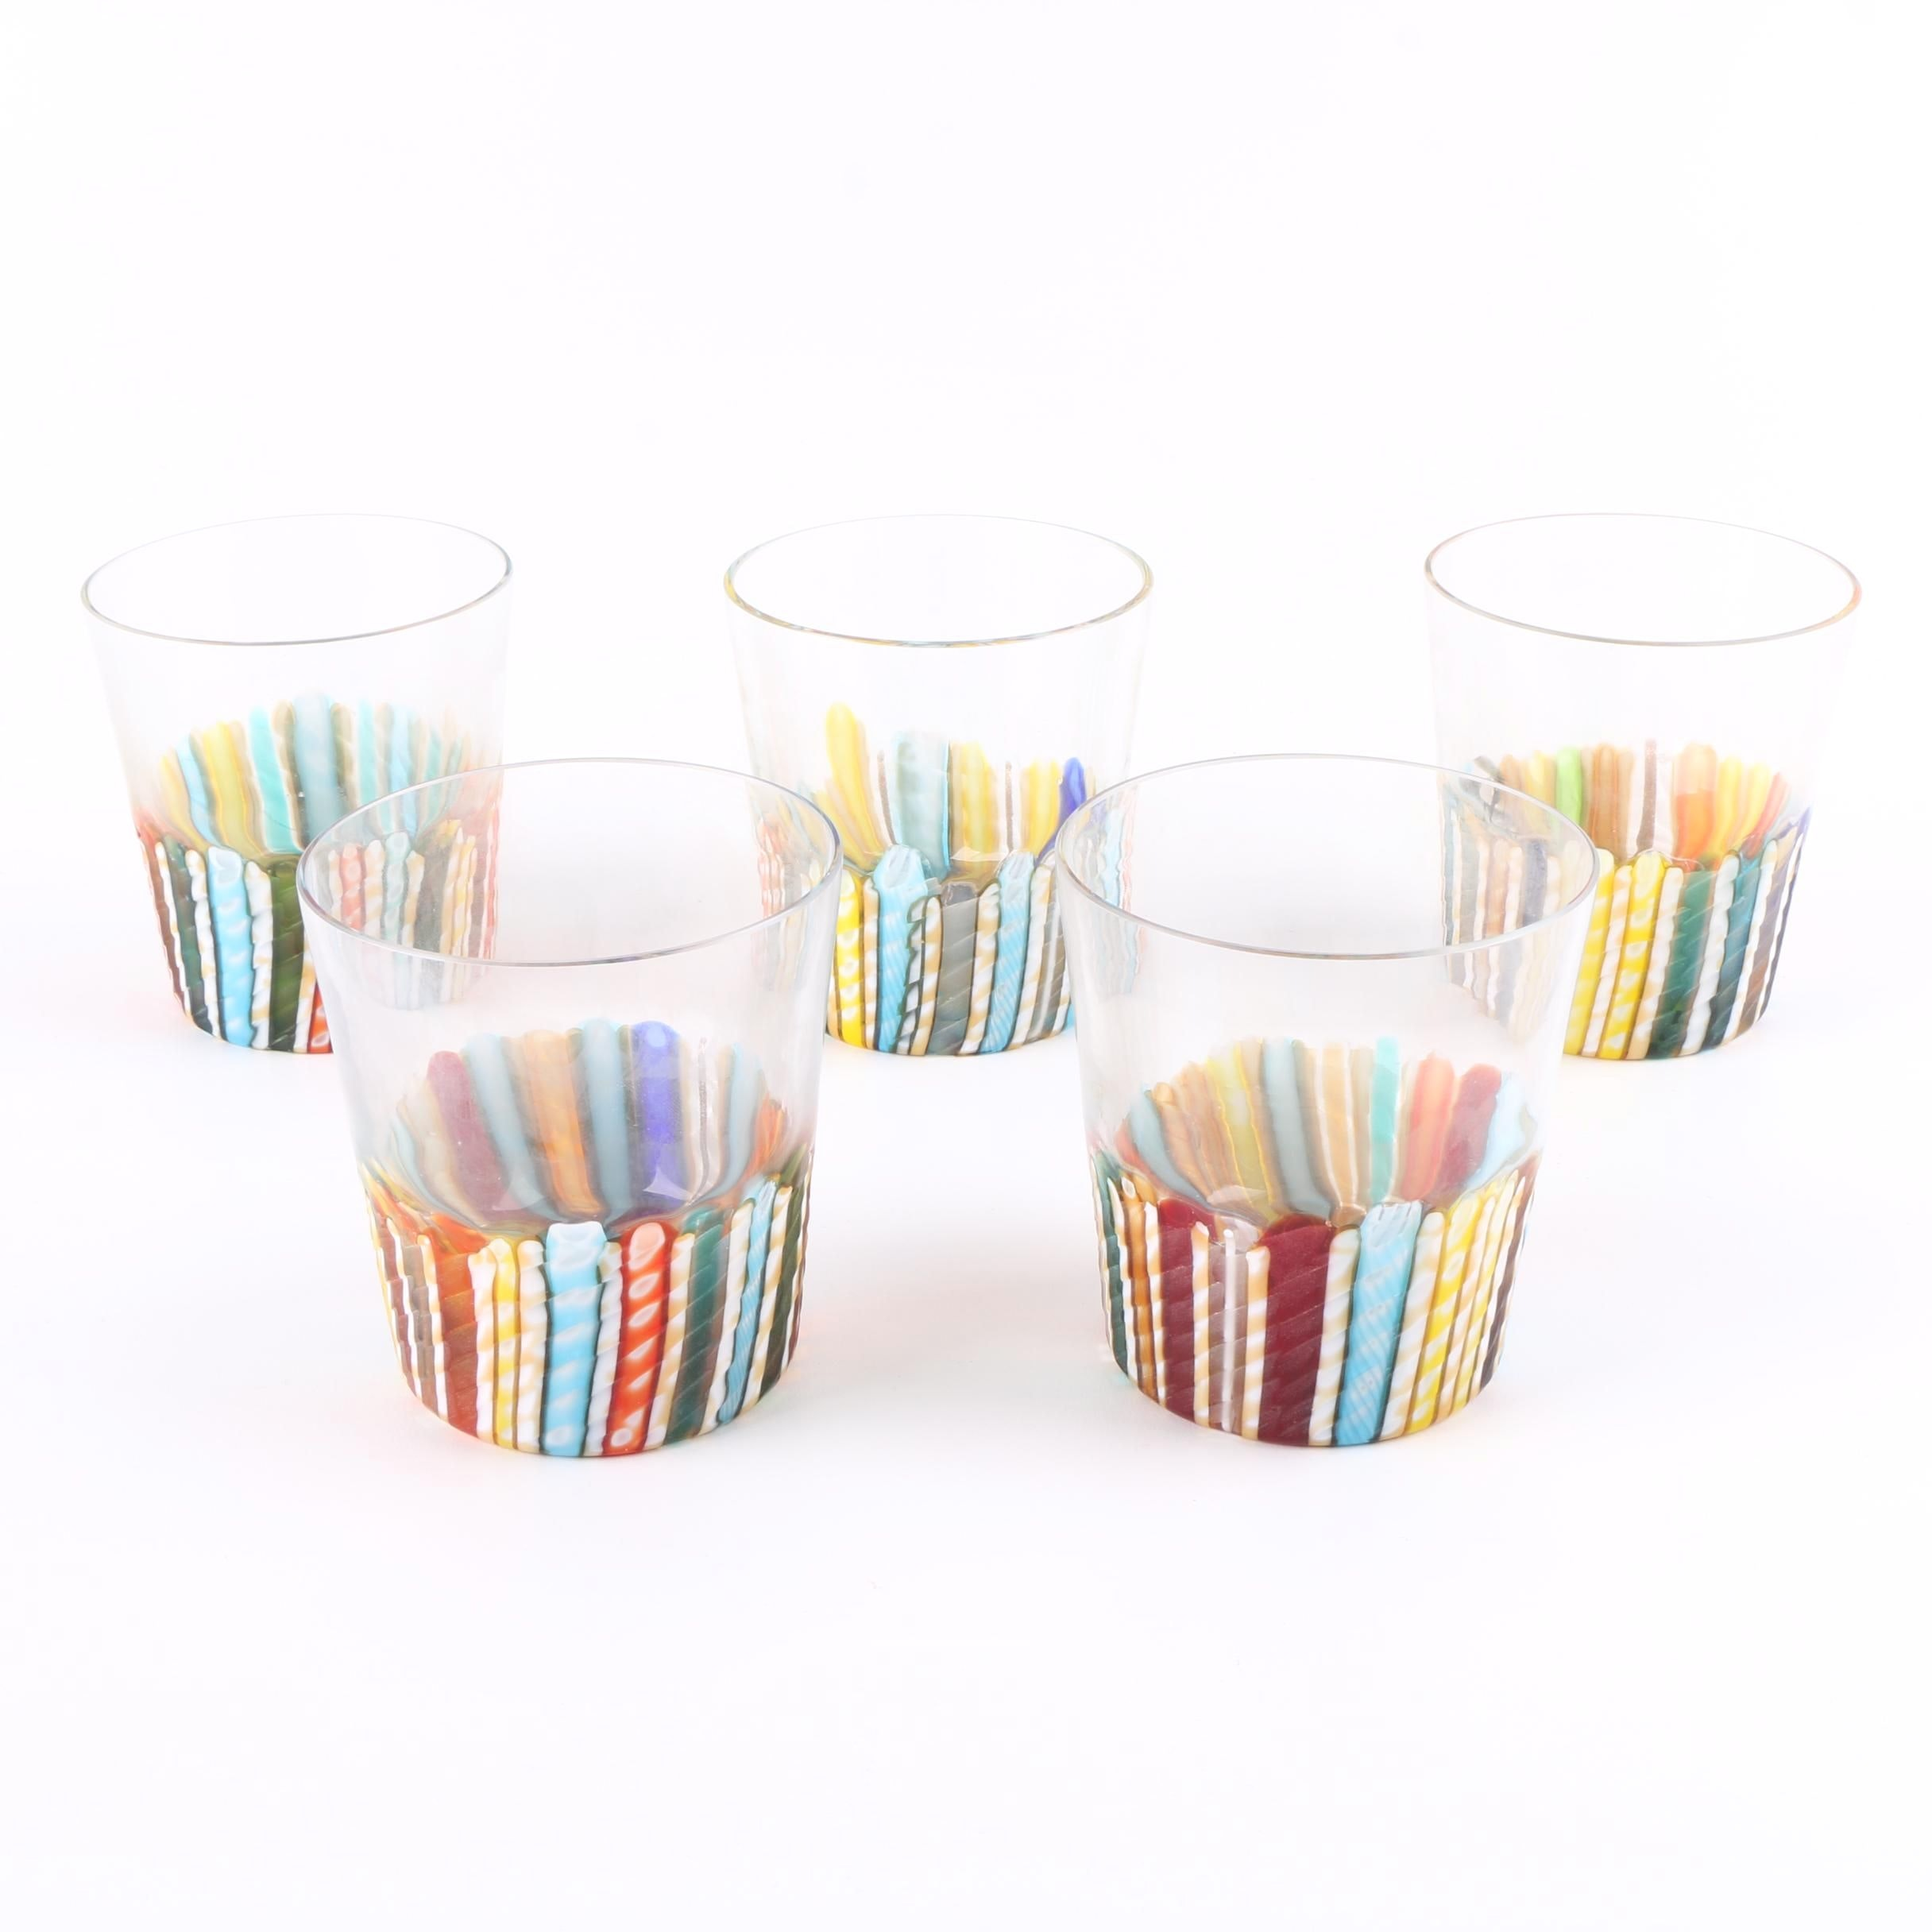 Signed Murano Glass Tumblers with Colorful Canes